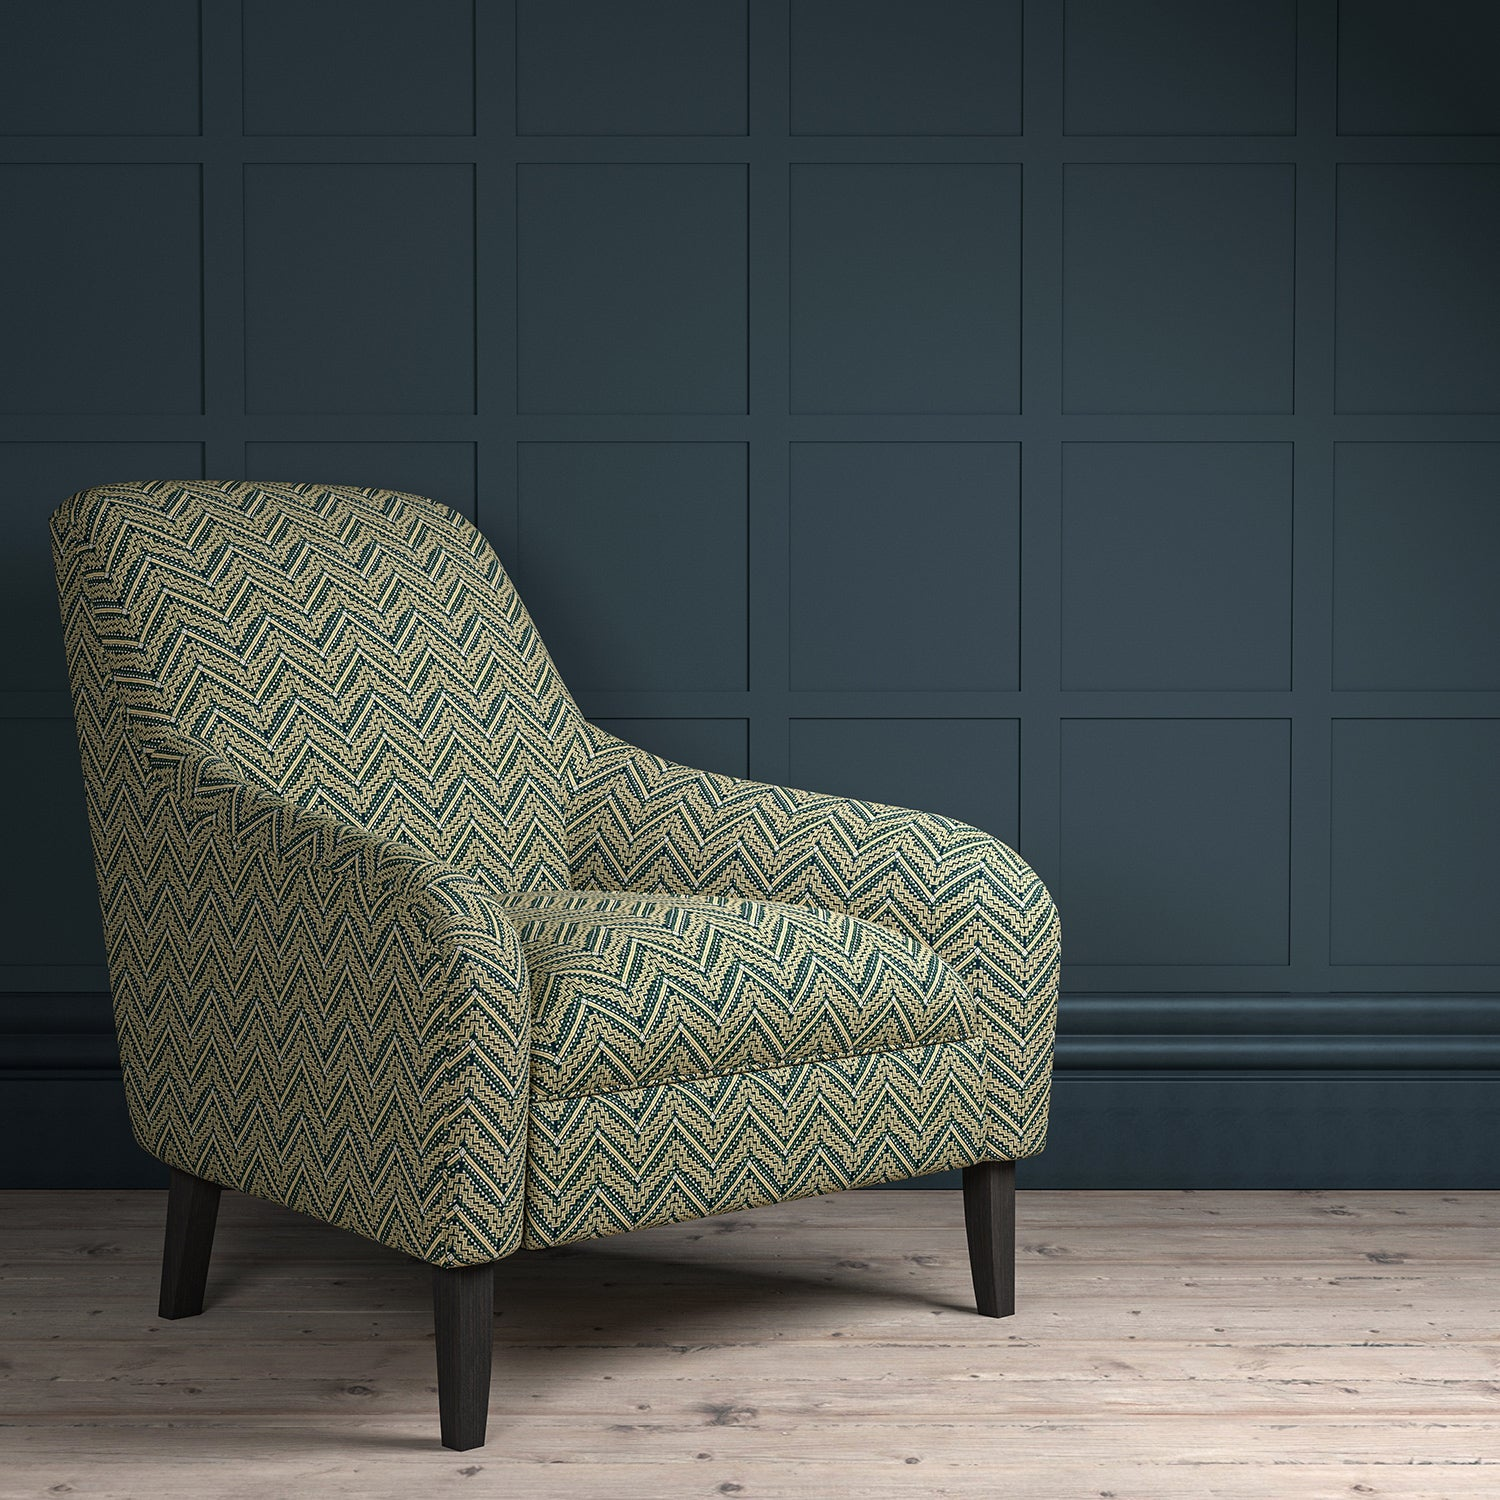 Chair upholstered in a dark grey coloured zig zag geometric upholstery fabric